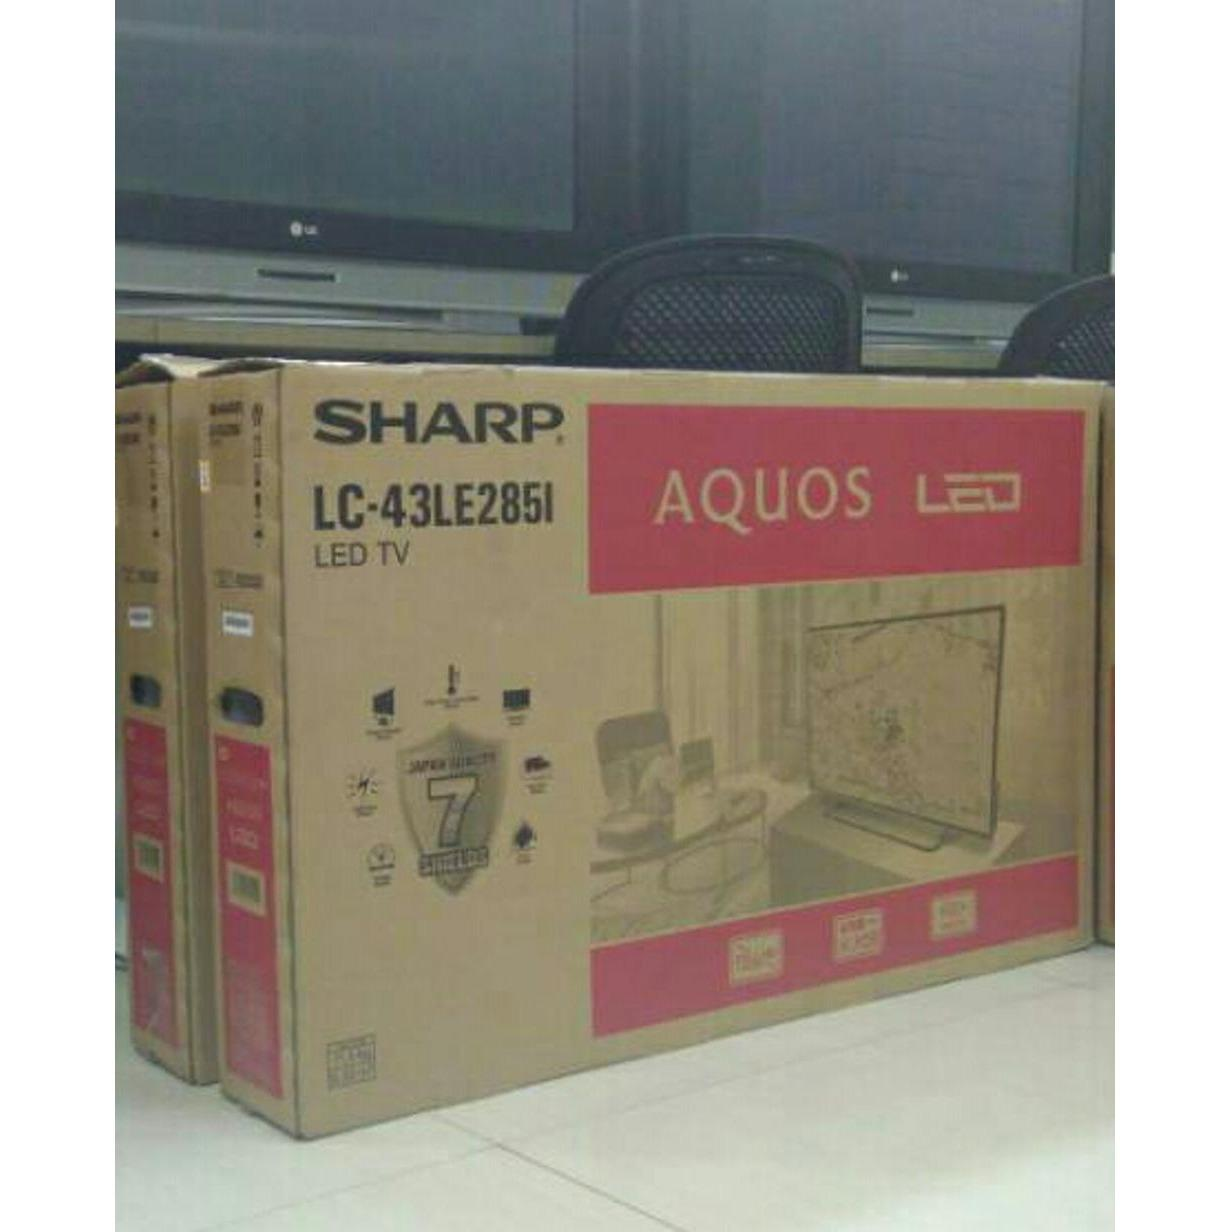 The Cheapest Price Sharp Lc32le185iwh Led Tv 32 Inch Rp750000 Aquos 19le150m